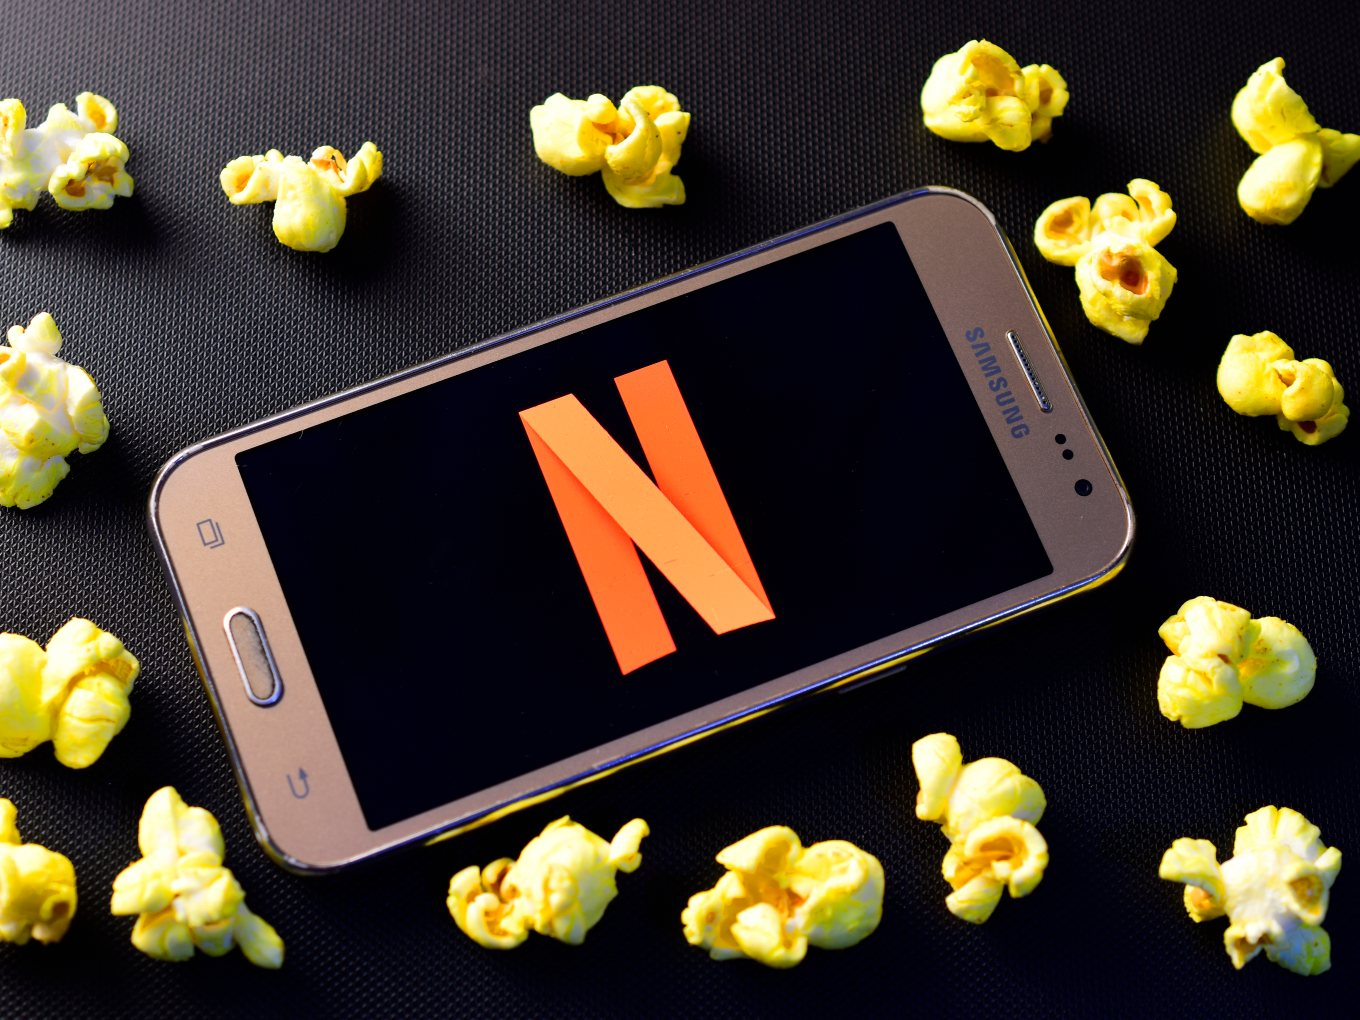 Netflix Looks To Lure Indian Viewers, Offers Free Access Over Weekend